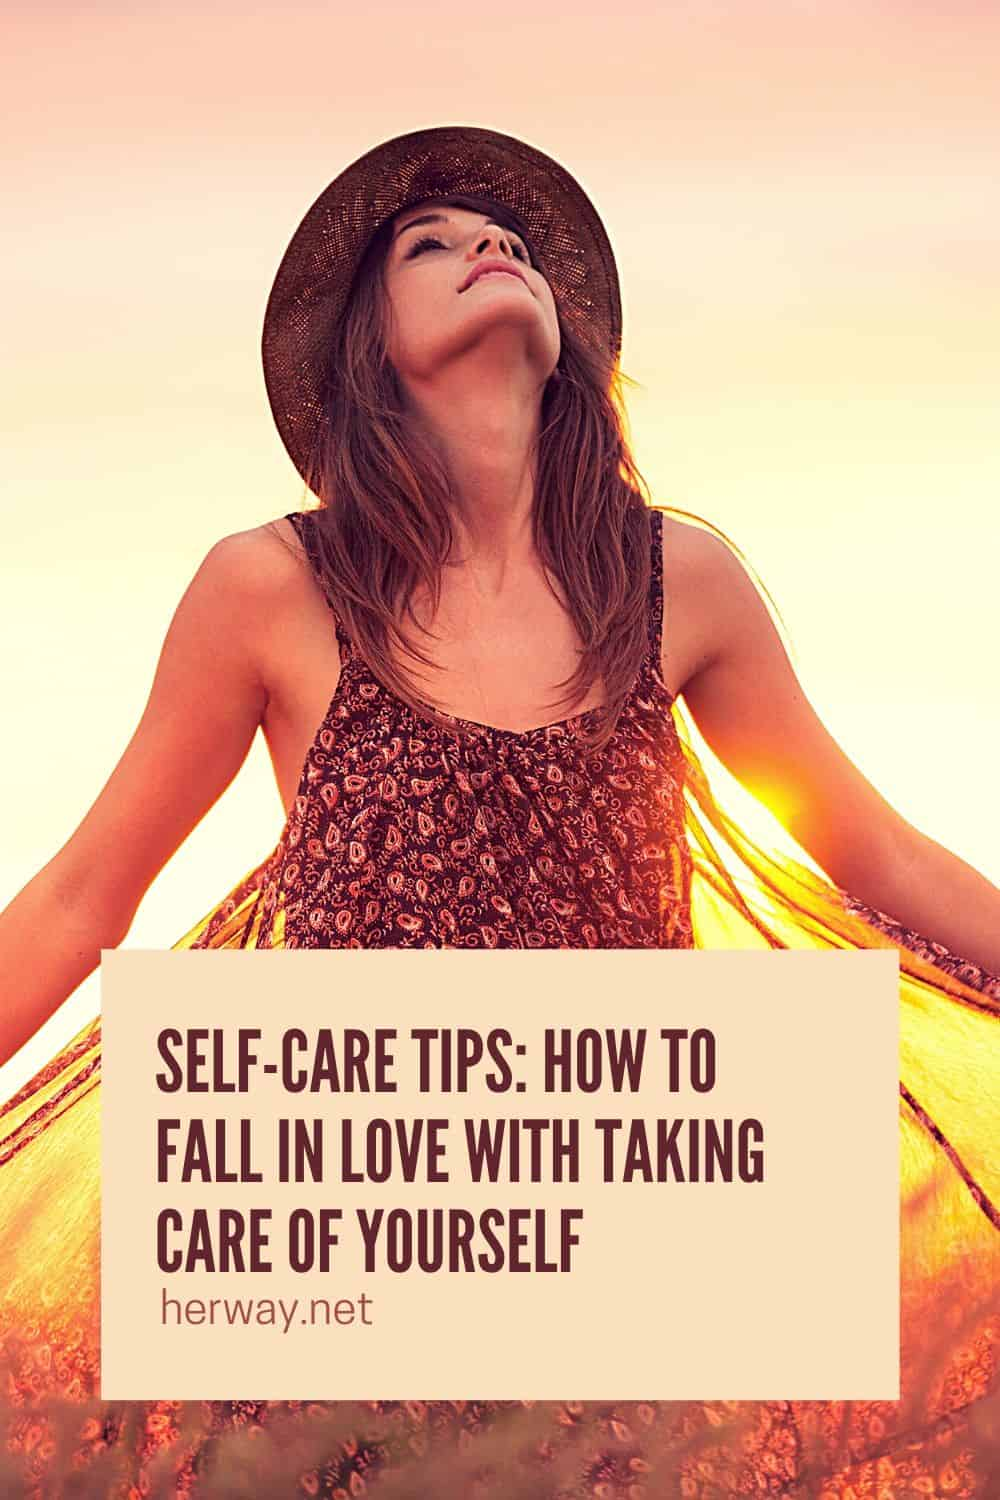 Self-Care Tips: How To Fall In Love With Taking Care Of Yourself